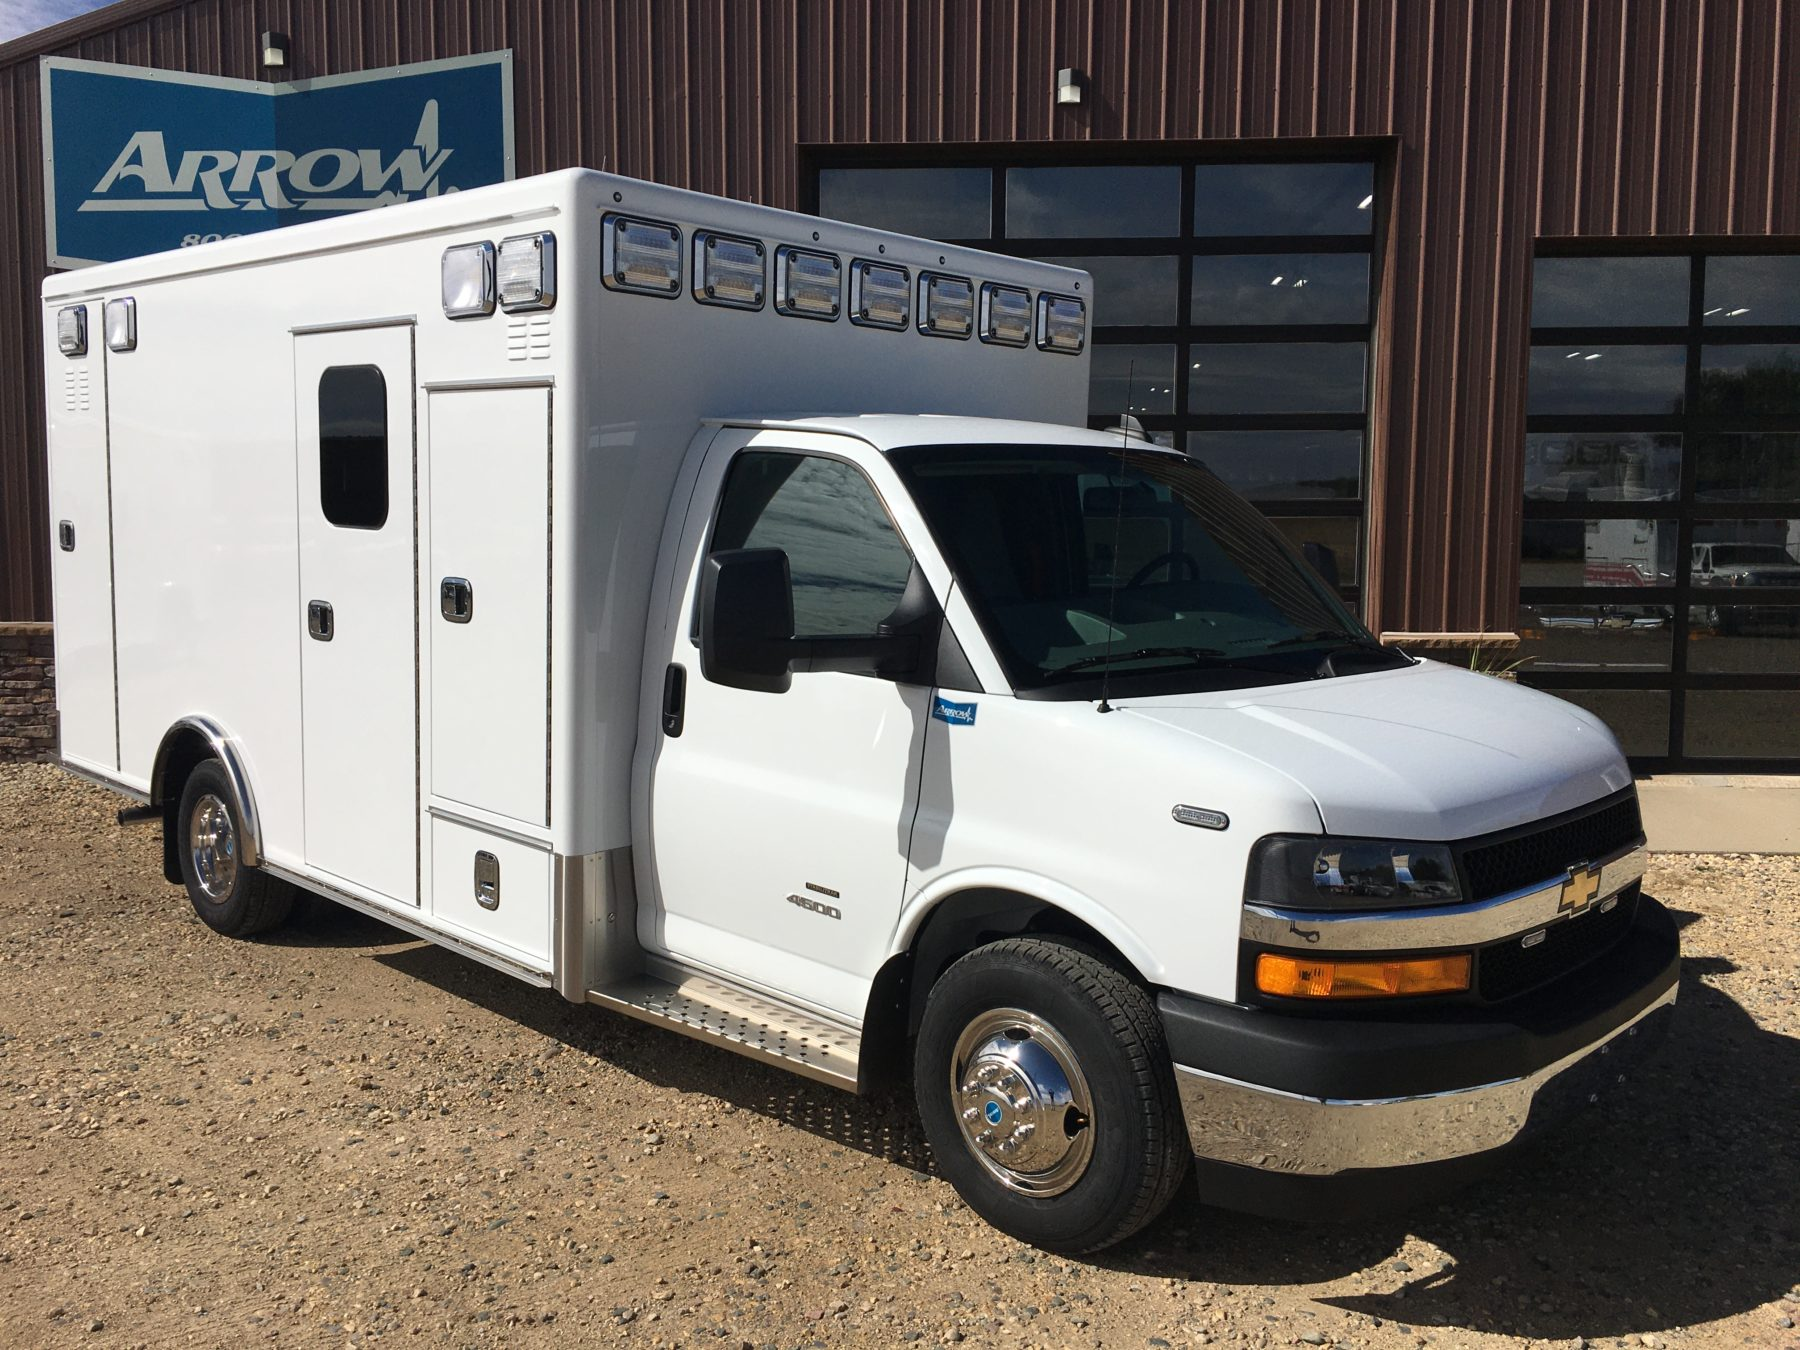 2020 Chevrolet G4500 Type 3 Ambulance For Sale – Picture 3